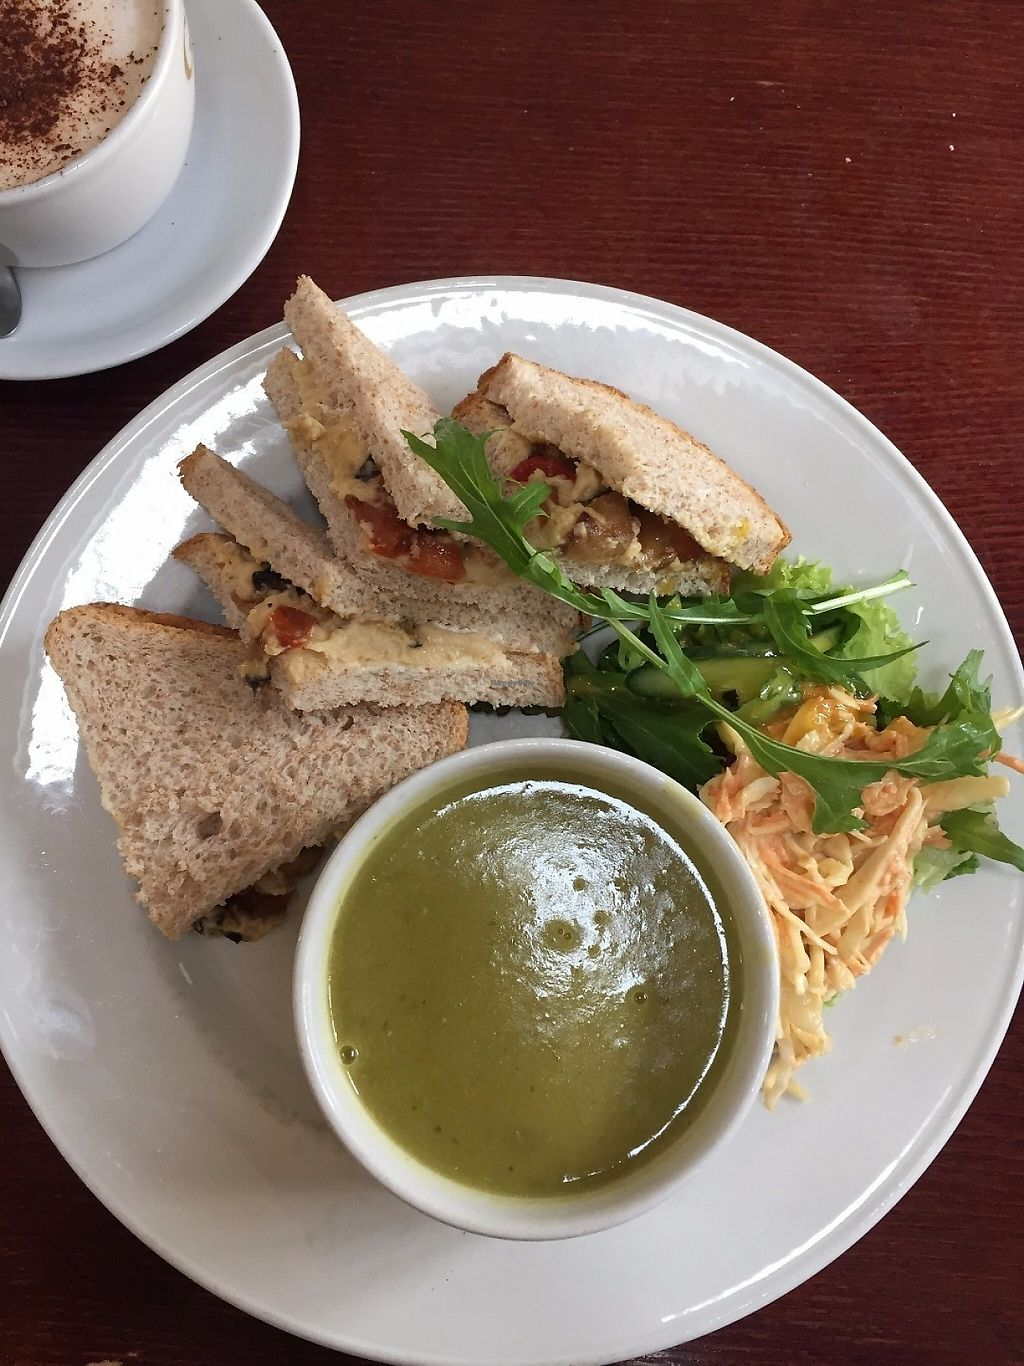 """Photo of Gillam's Tea Room  by <a href=""""/members/profile/stephenwelleruk"""">stephenwelleruk</a> <br/>Decent and tasty """"soup & sandwich"""" - Hummus & Roast Veg, with a Pea soup. Specialist coffee on the side (Spiced Orange Latte) <br/> May 15, 2017  - <a href='/contact/abuse/image/9676/259071'>Report</a>"""